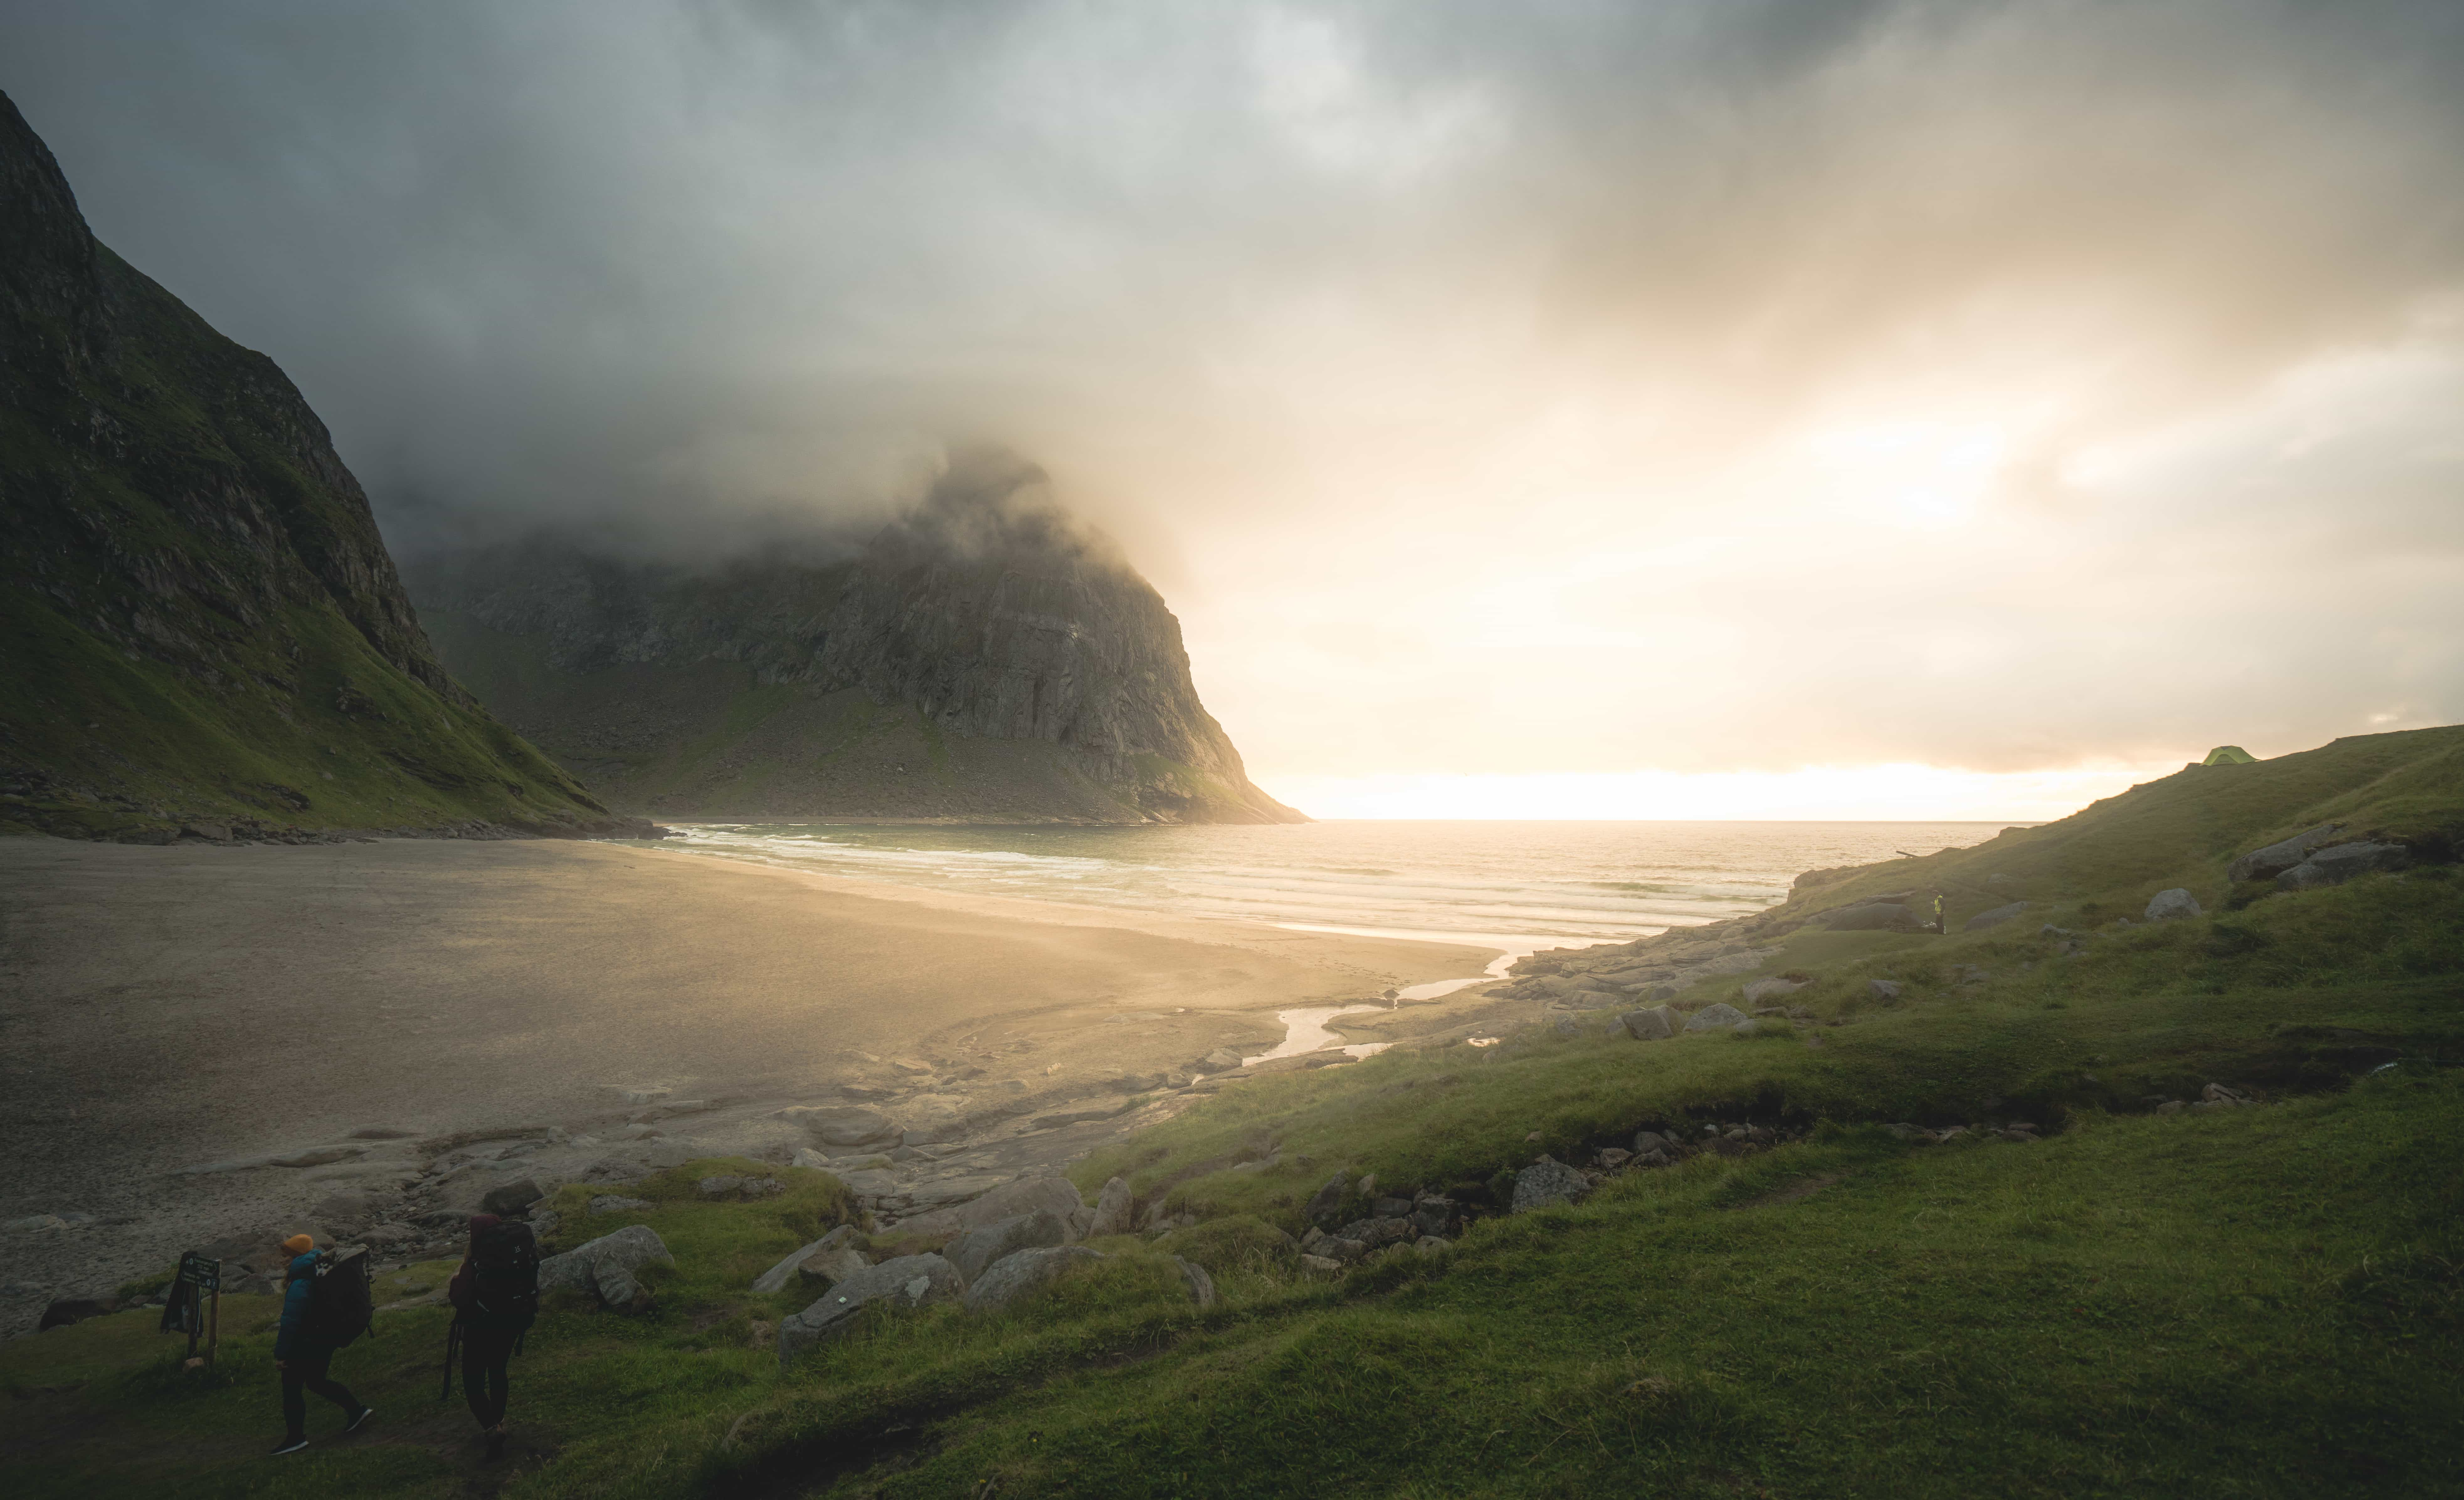 Horseid beach in the Lofoten islands